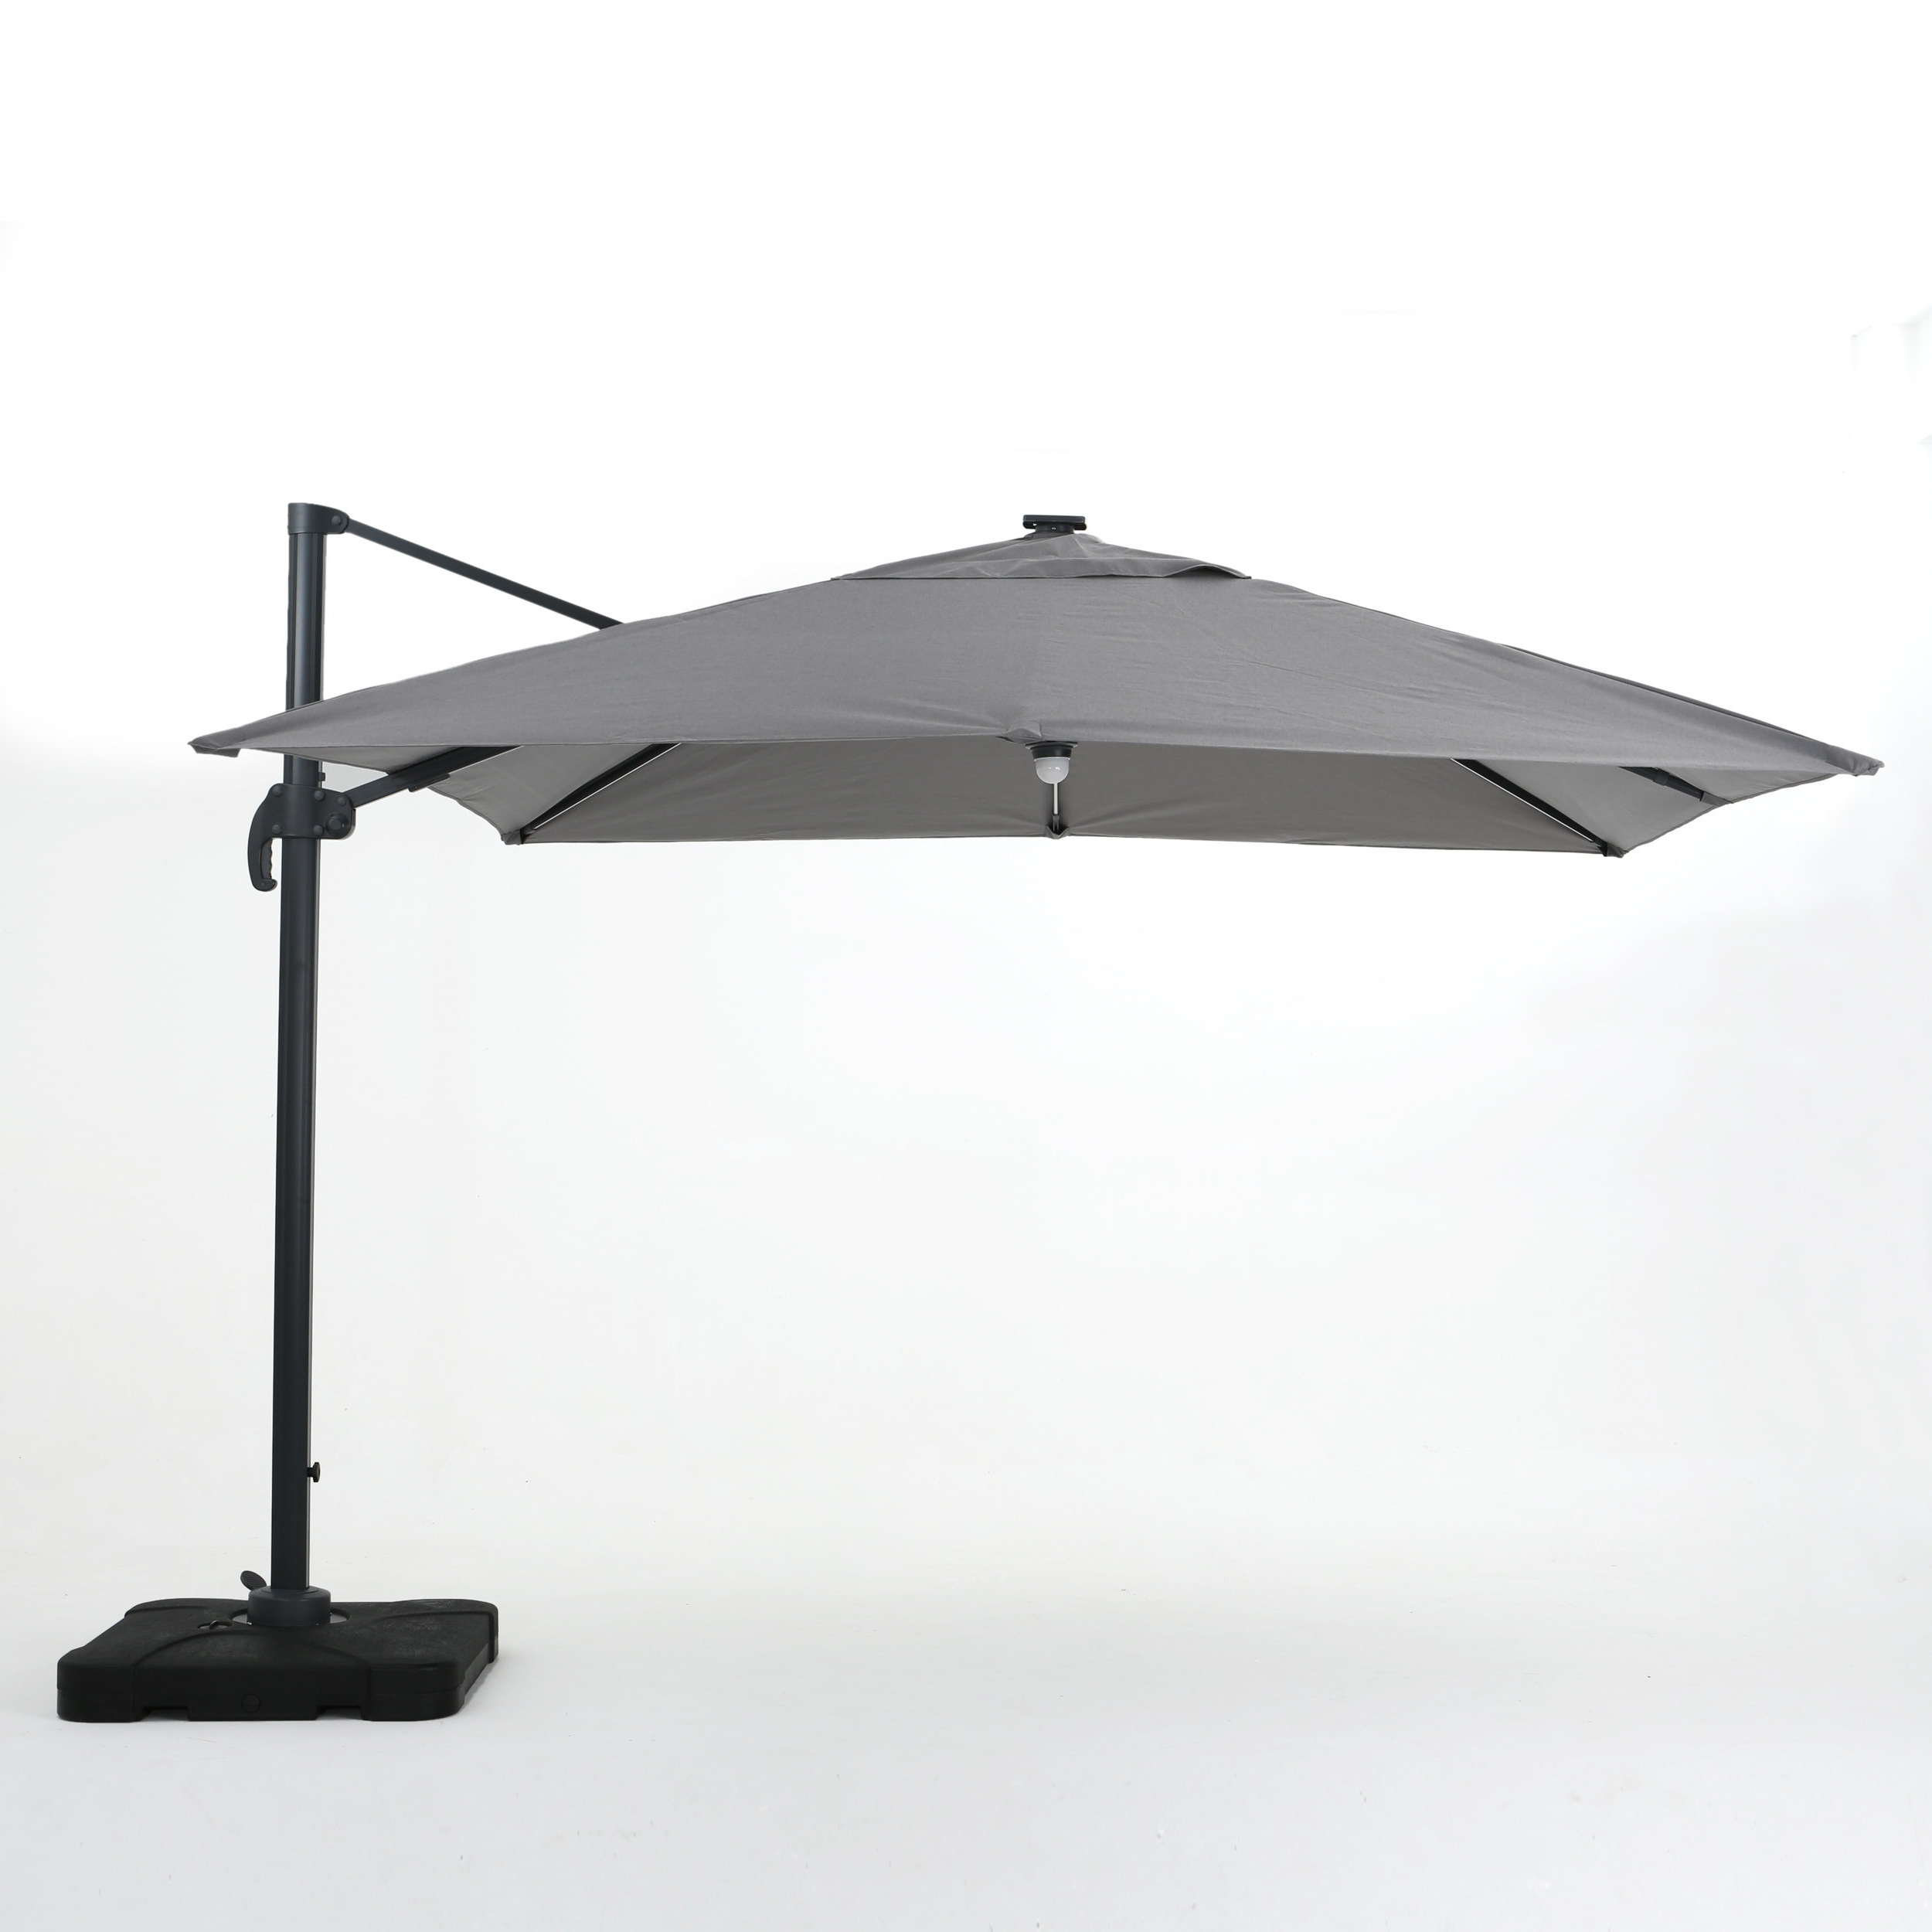 Grote Liberty Aluminum Square Cantilever Umbrellas Pertaining To 2019 Jendayi Square Cantilever Umbrella (View 12 of 20)